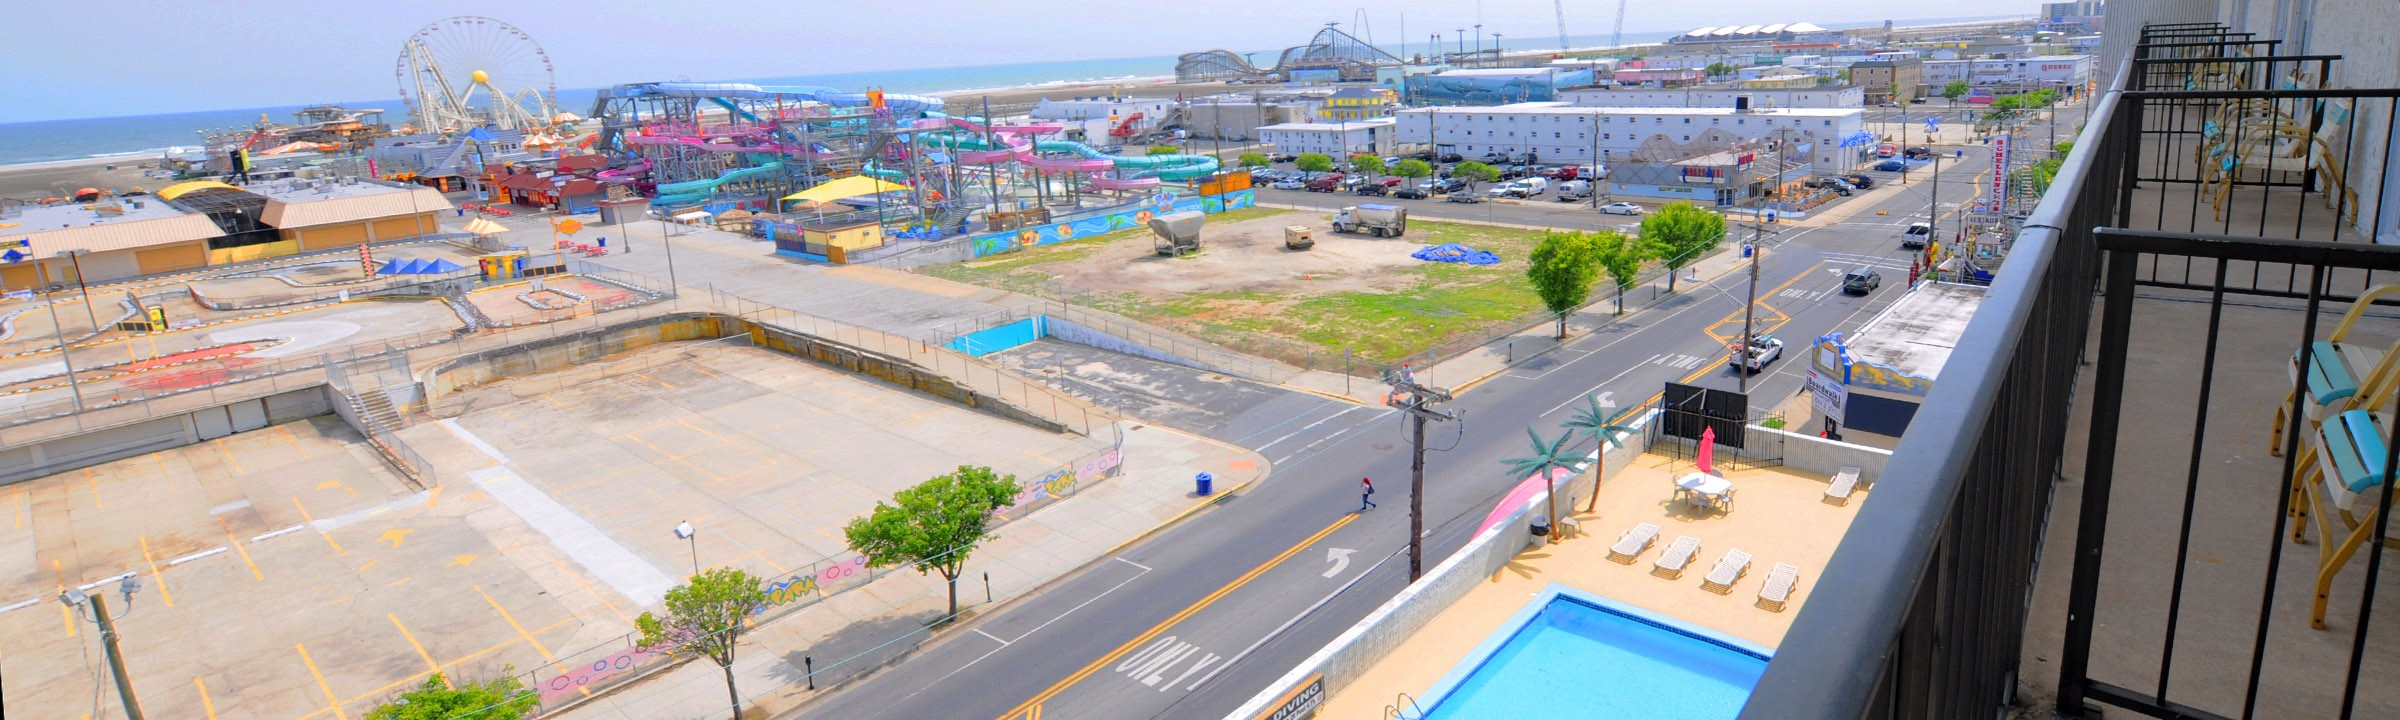 Best Motels In Wildwood Nj